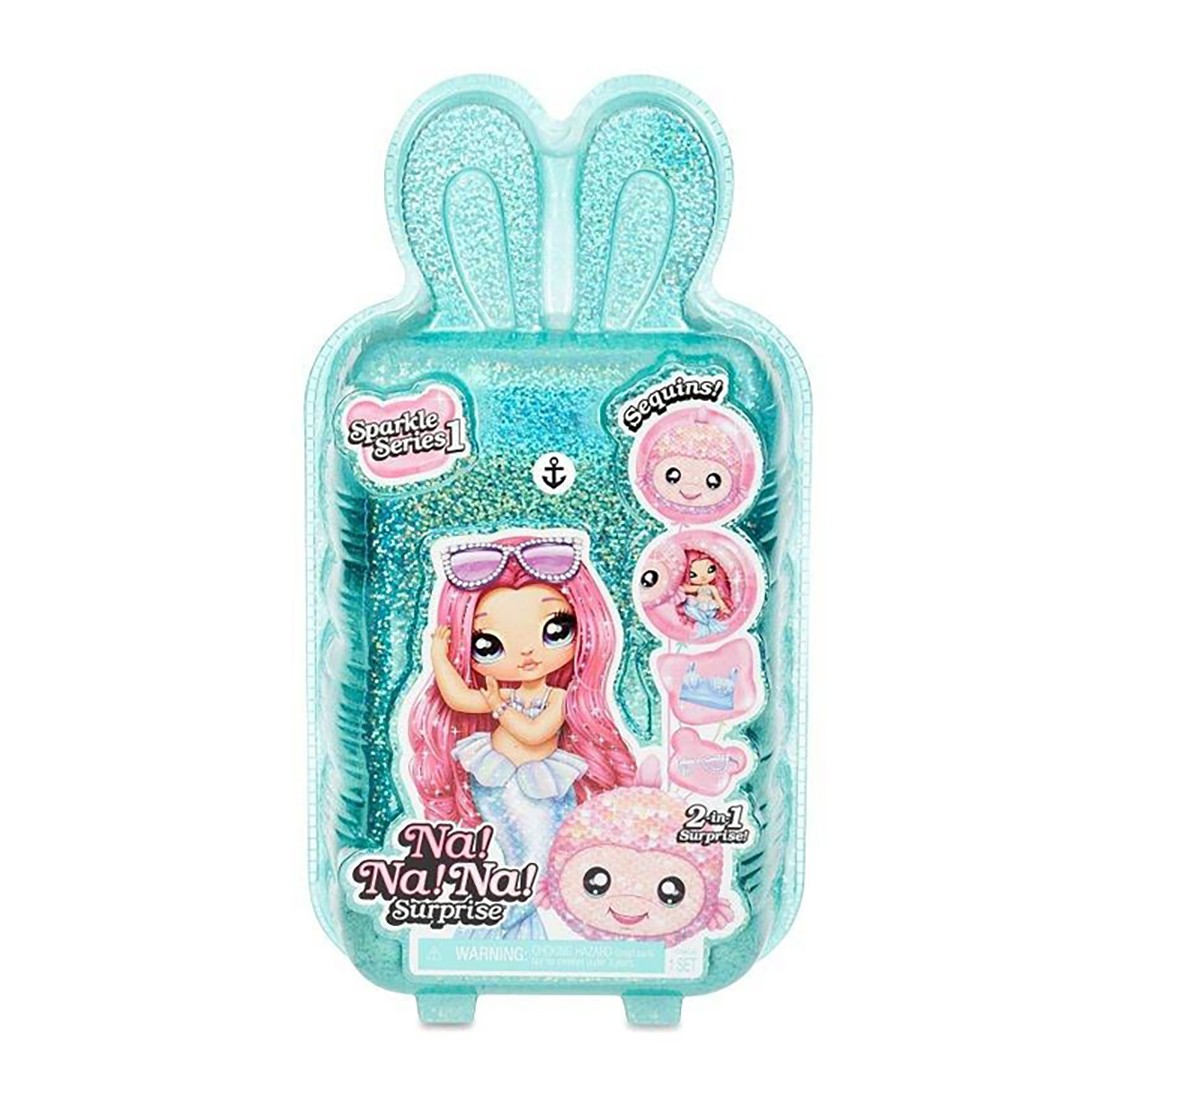 LOL Na! Na! Na! Surprise 2 in1 Pom Doll, Collectible Dolls for girls age 3Y+